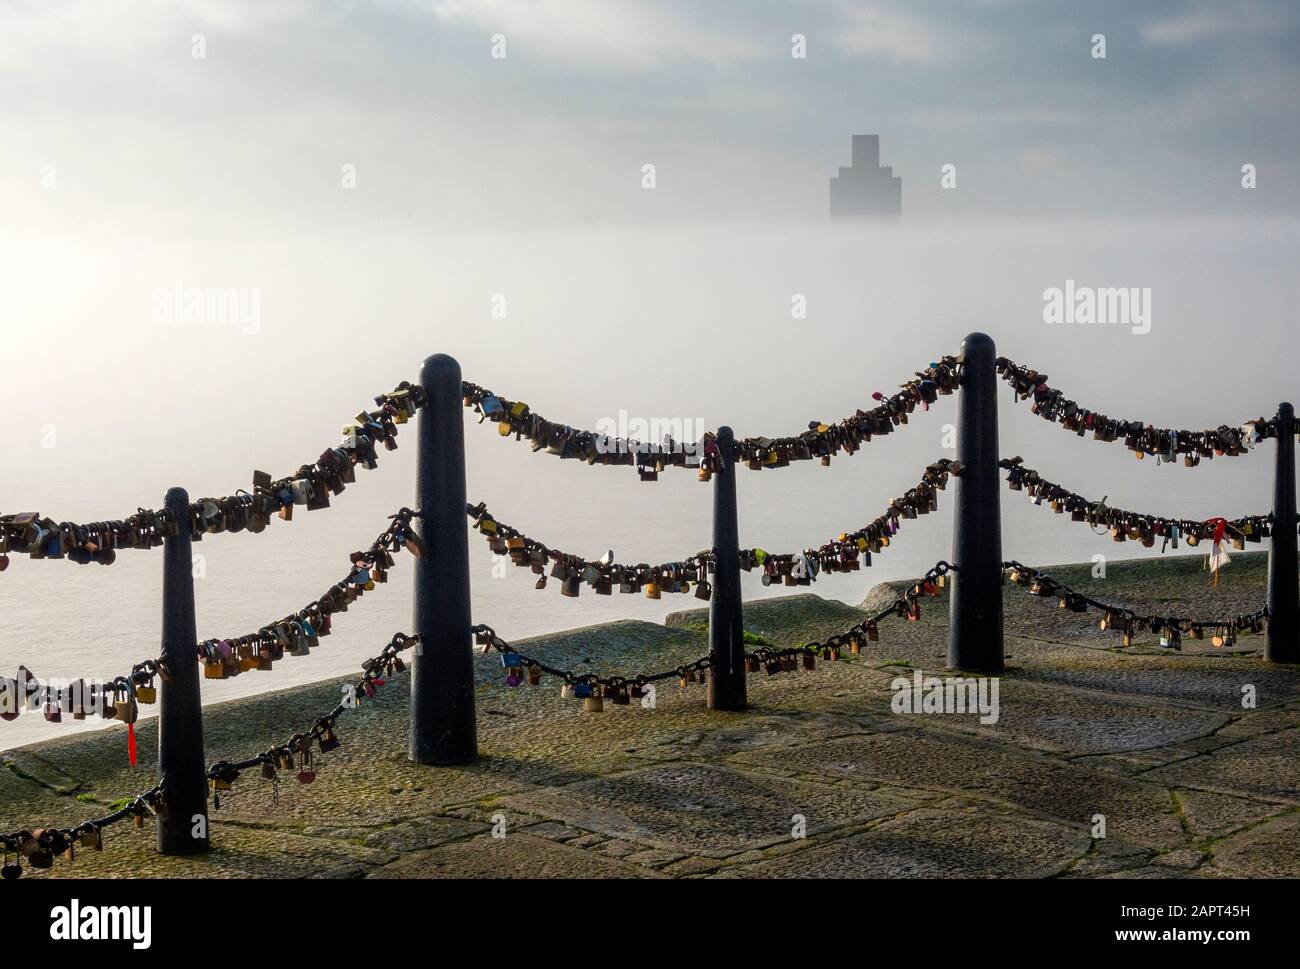 heavy-fog-on-the-river-mersey-in-liverpo